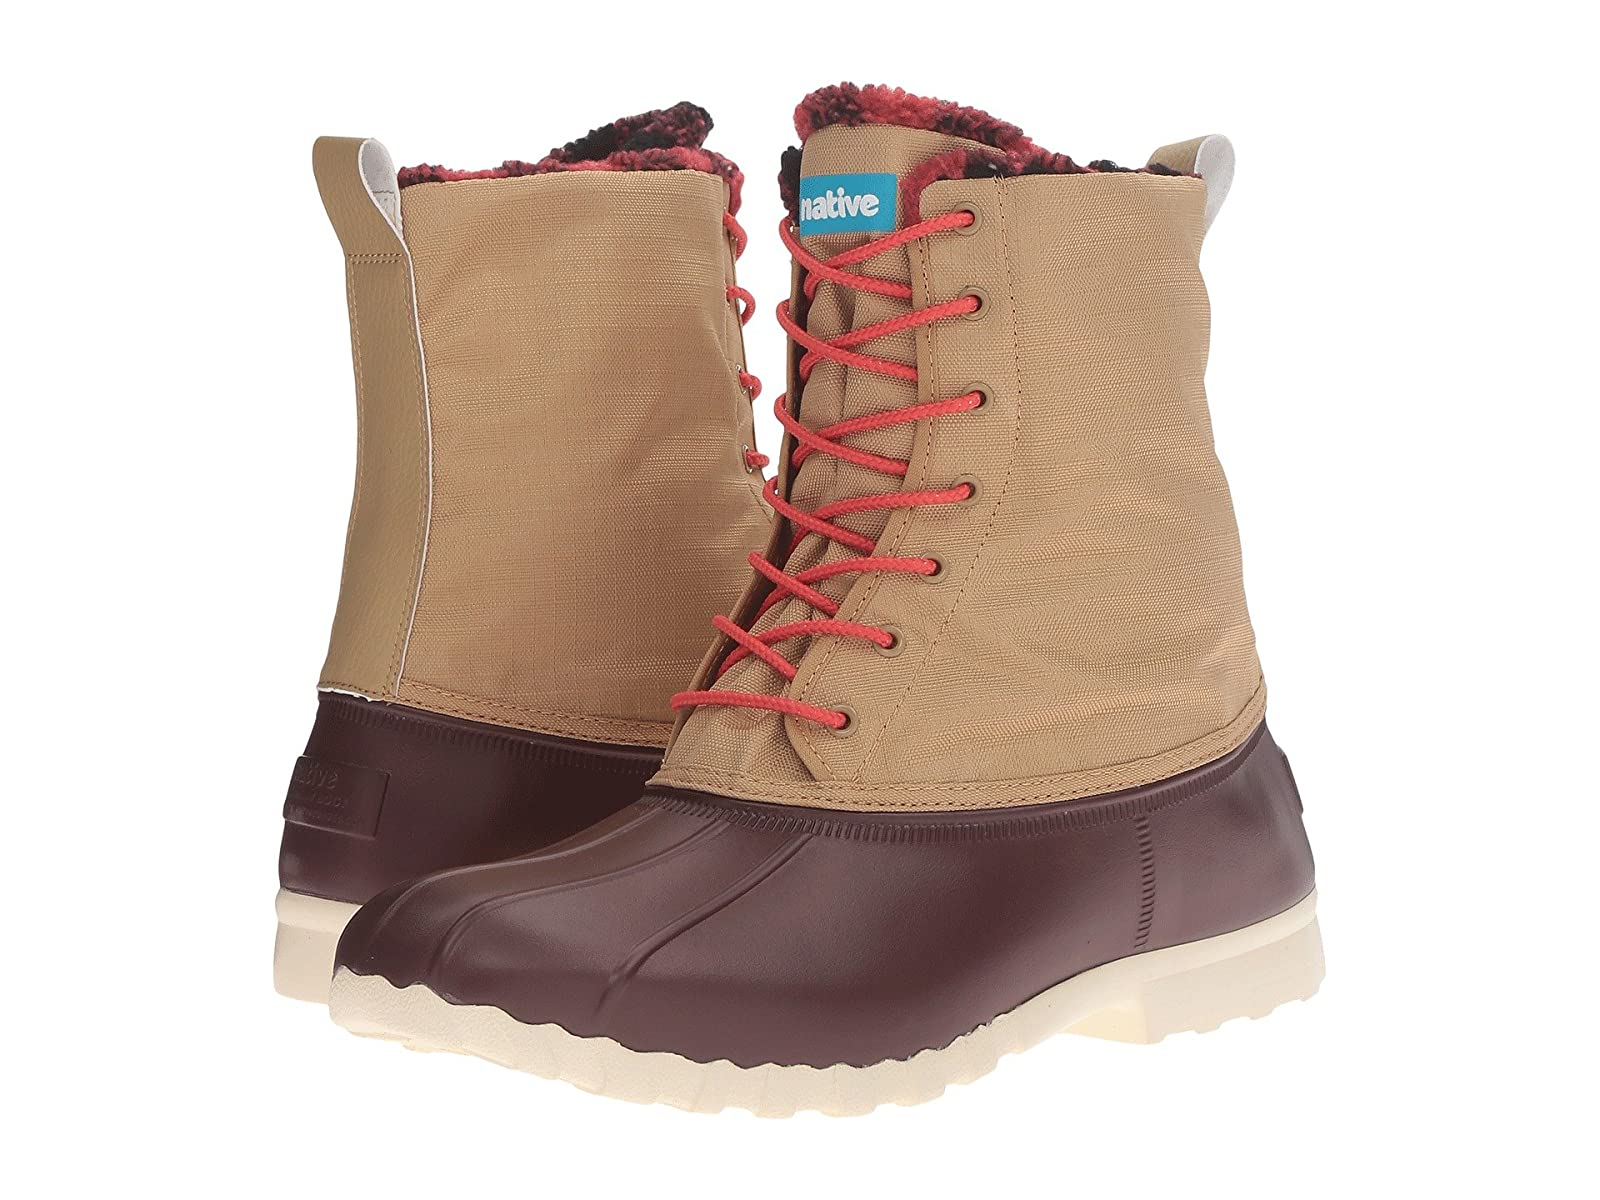 Native Shoes Jimmy WinterCheap and distinctive eye-catching shoes